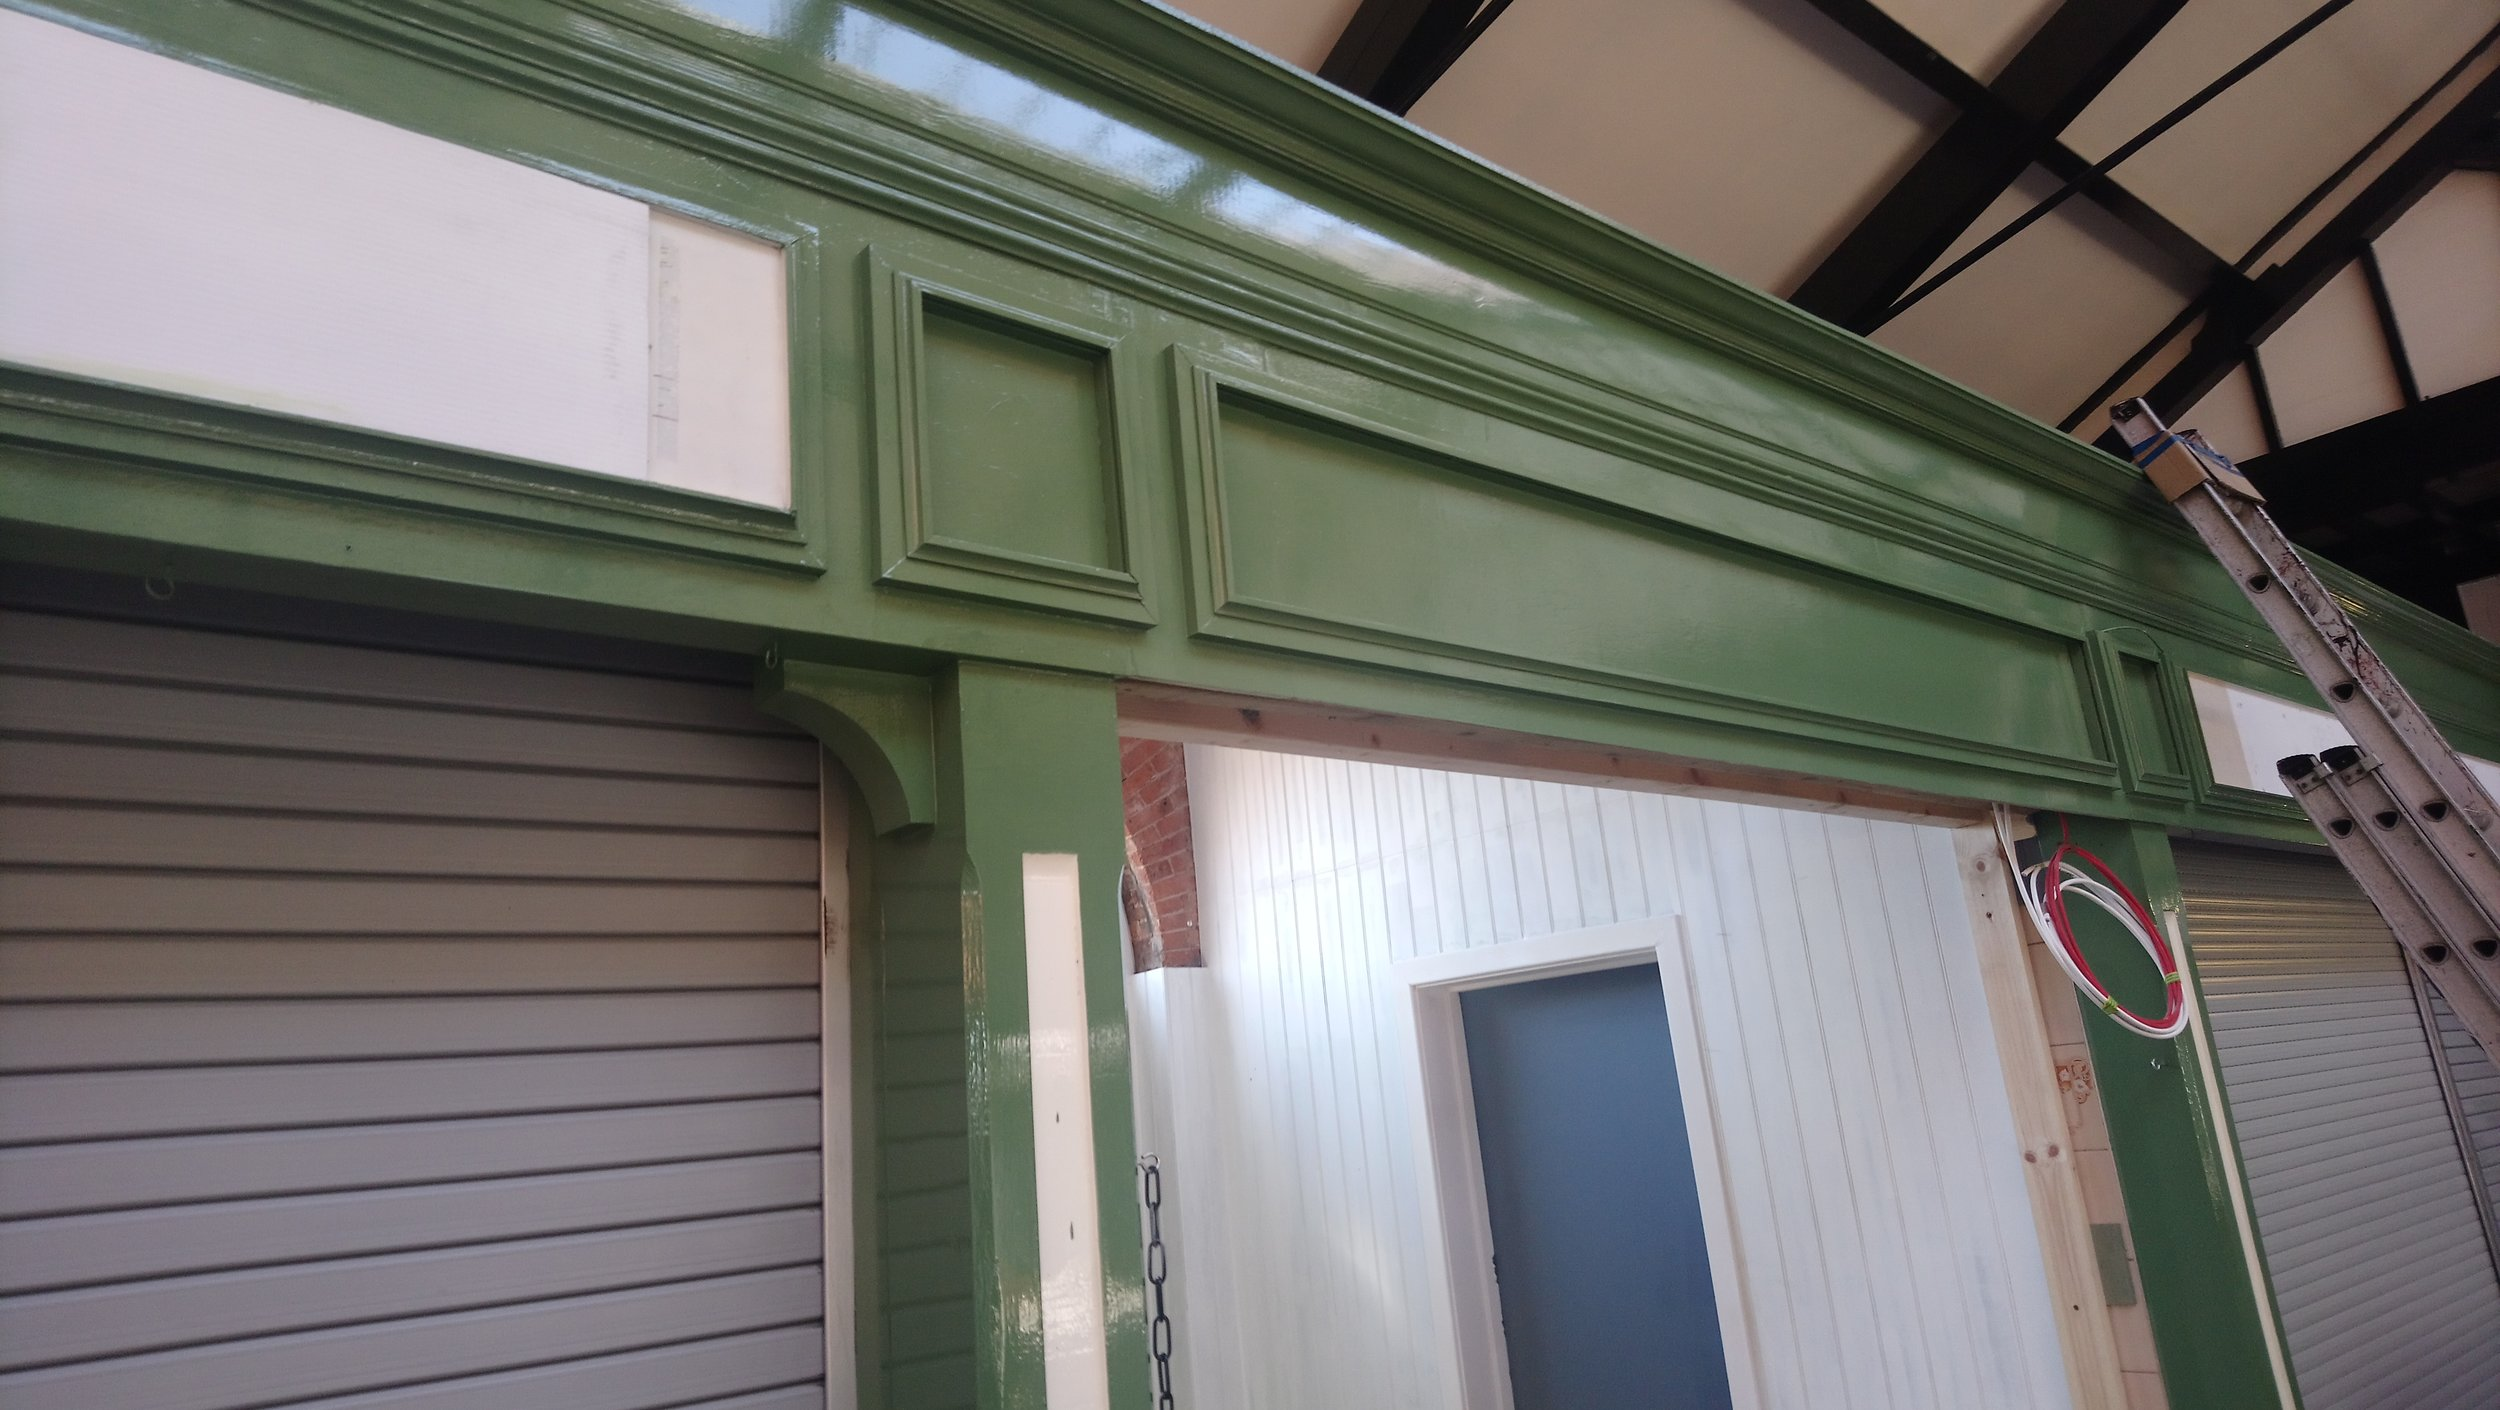 Week 7 - It is all coming together and the internal decorations are progressing nicely. The external of the Market Hall units are nearly complete while the undercoat for the central stalls has been applied.